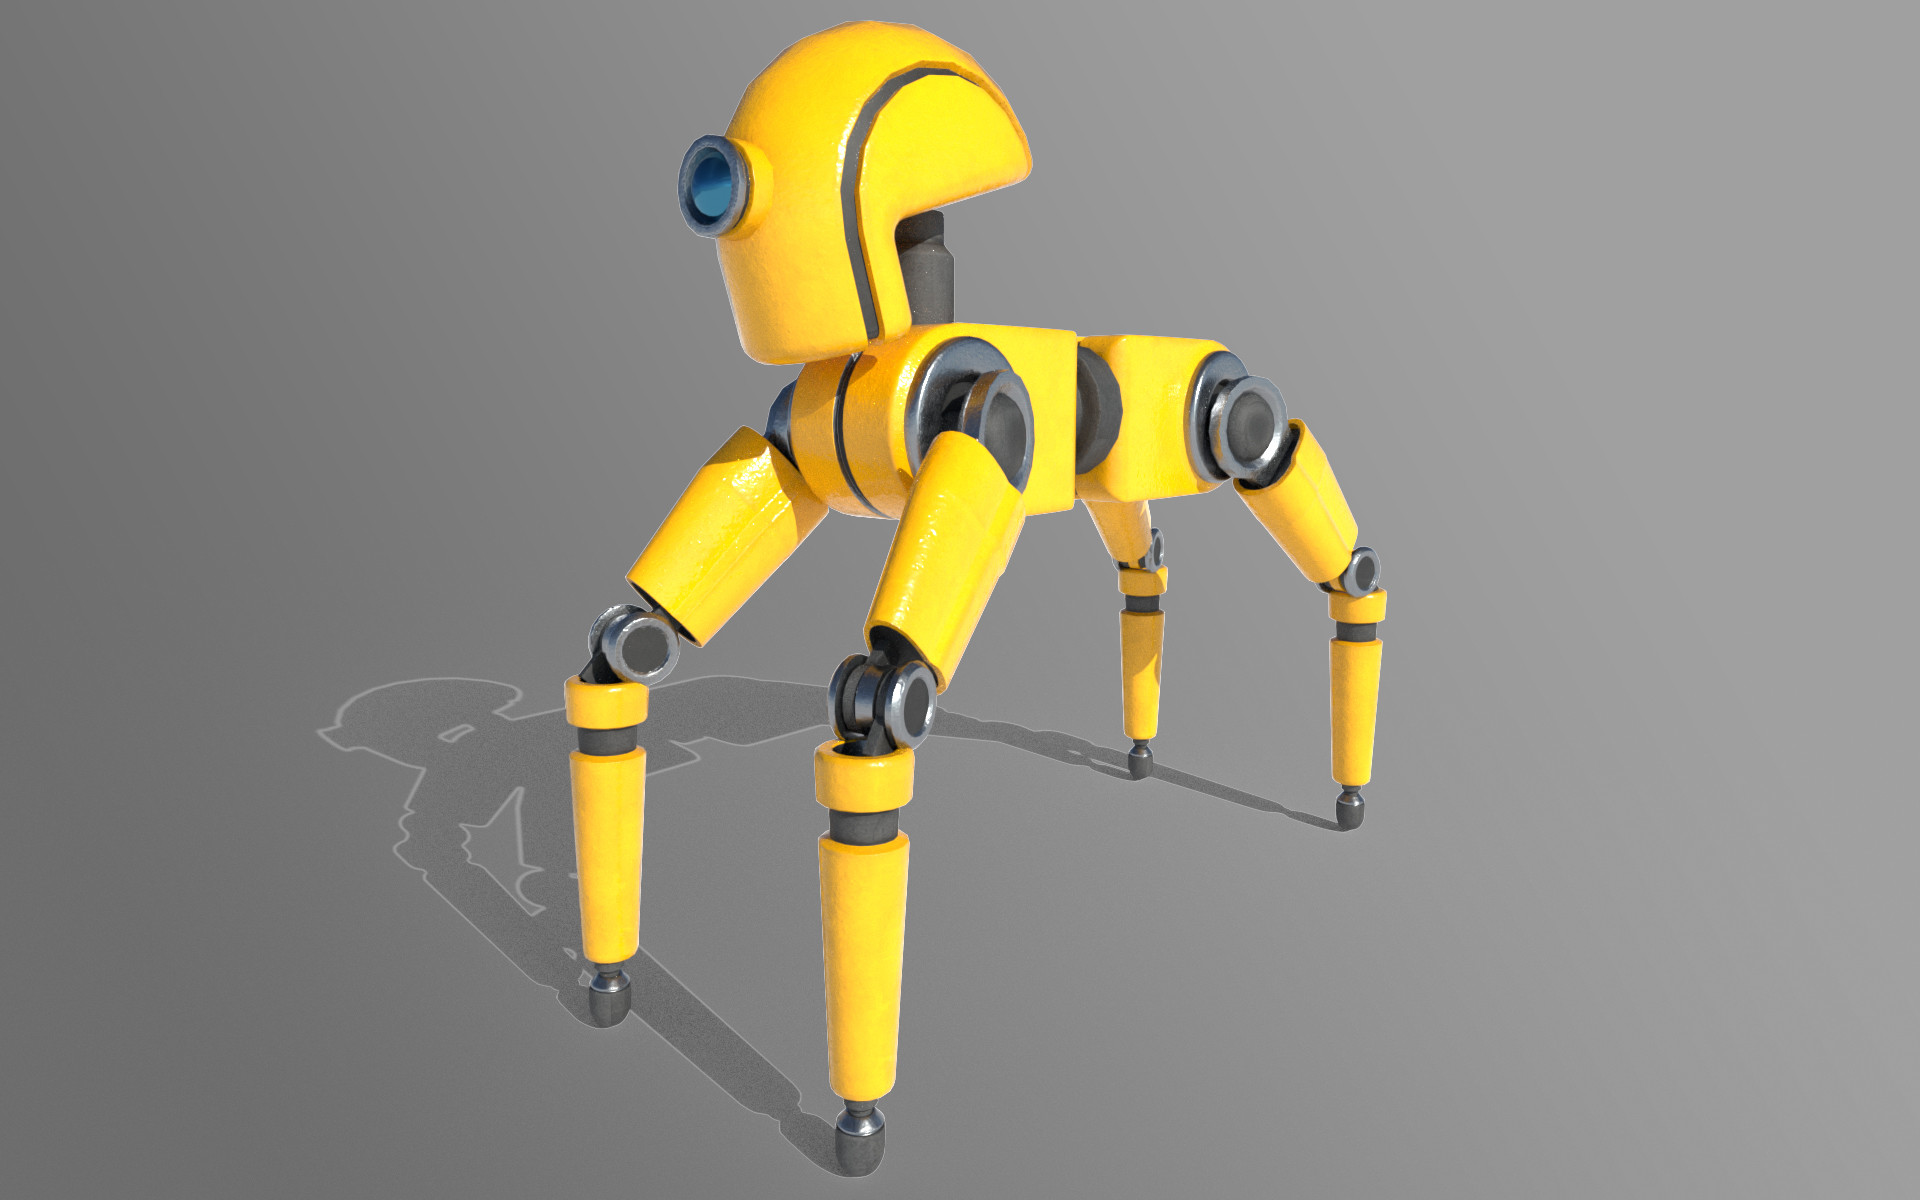 Alexis faintreny render robot2 colored